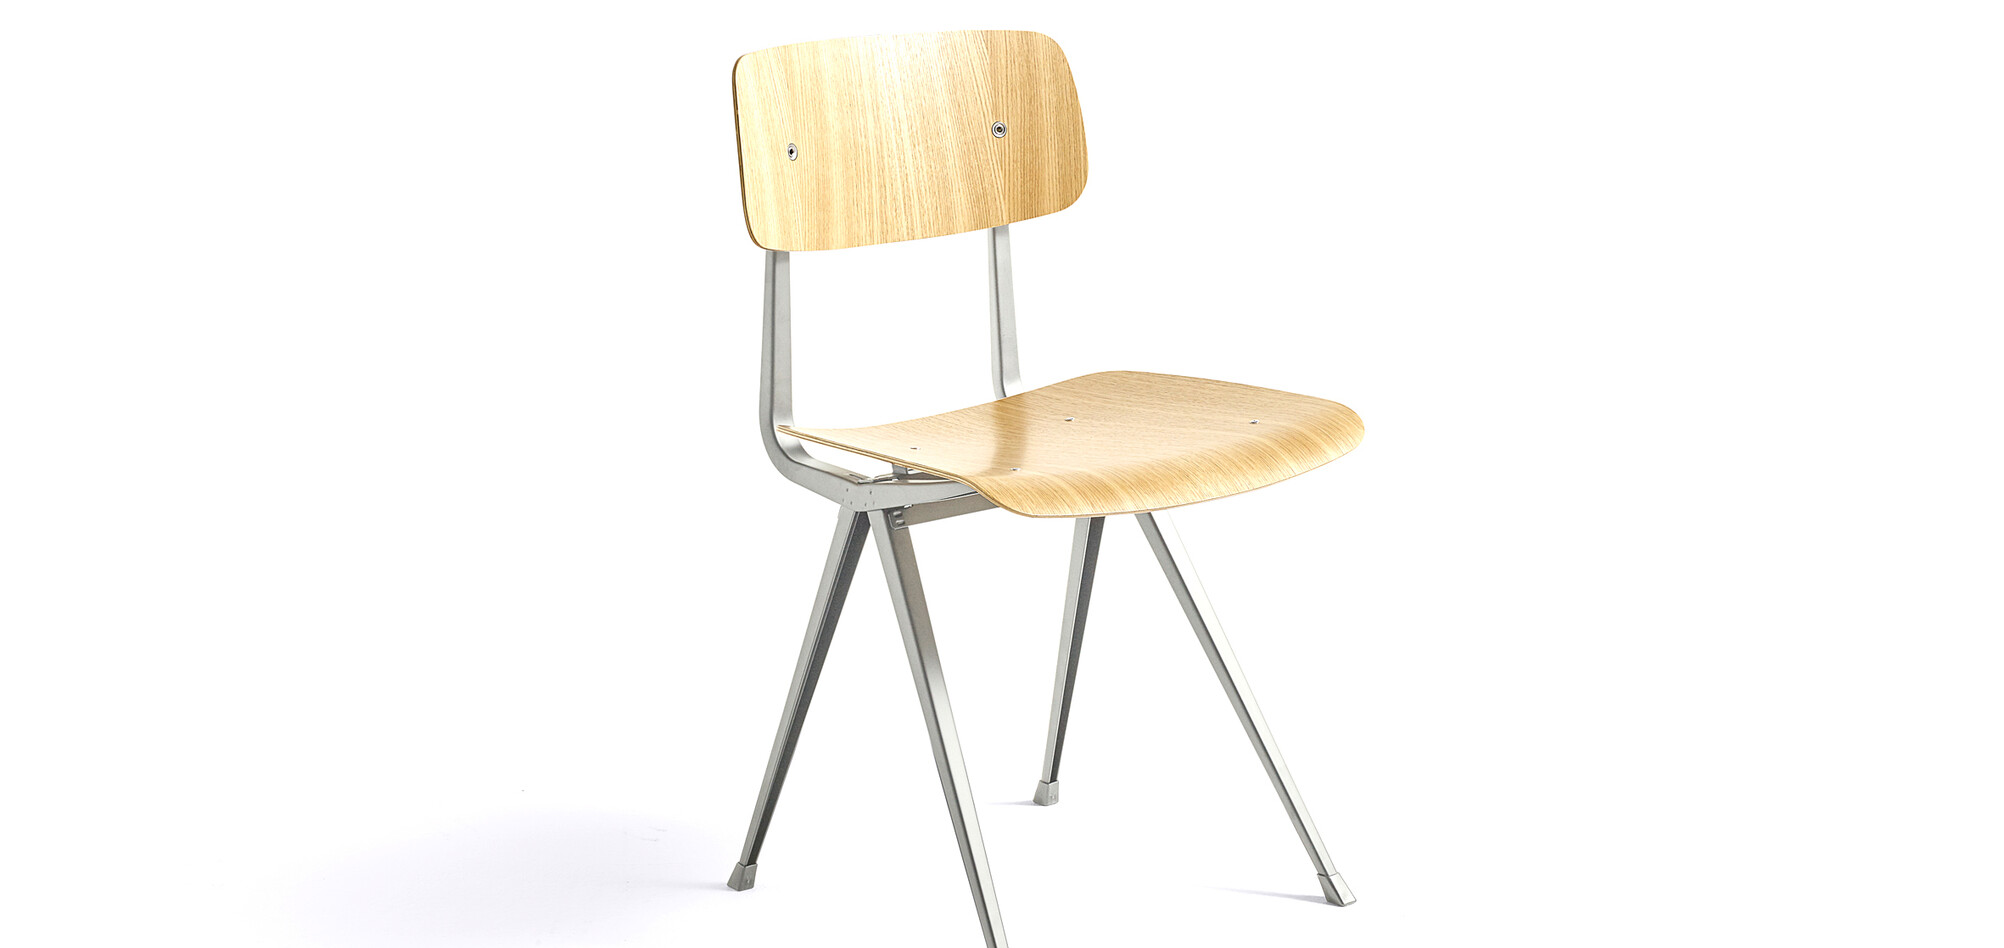 197161_Result Chair_Frame beige_Seat Back clear lacquered oak